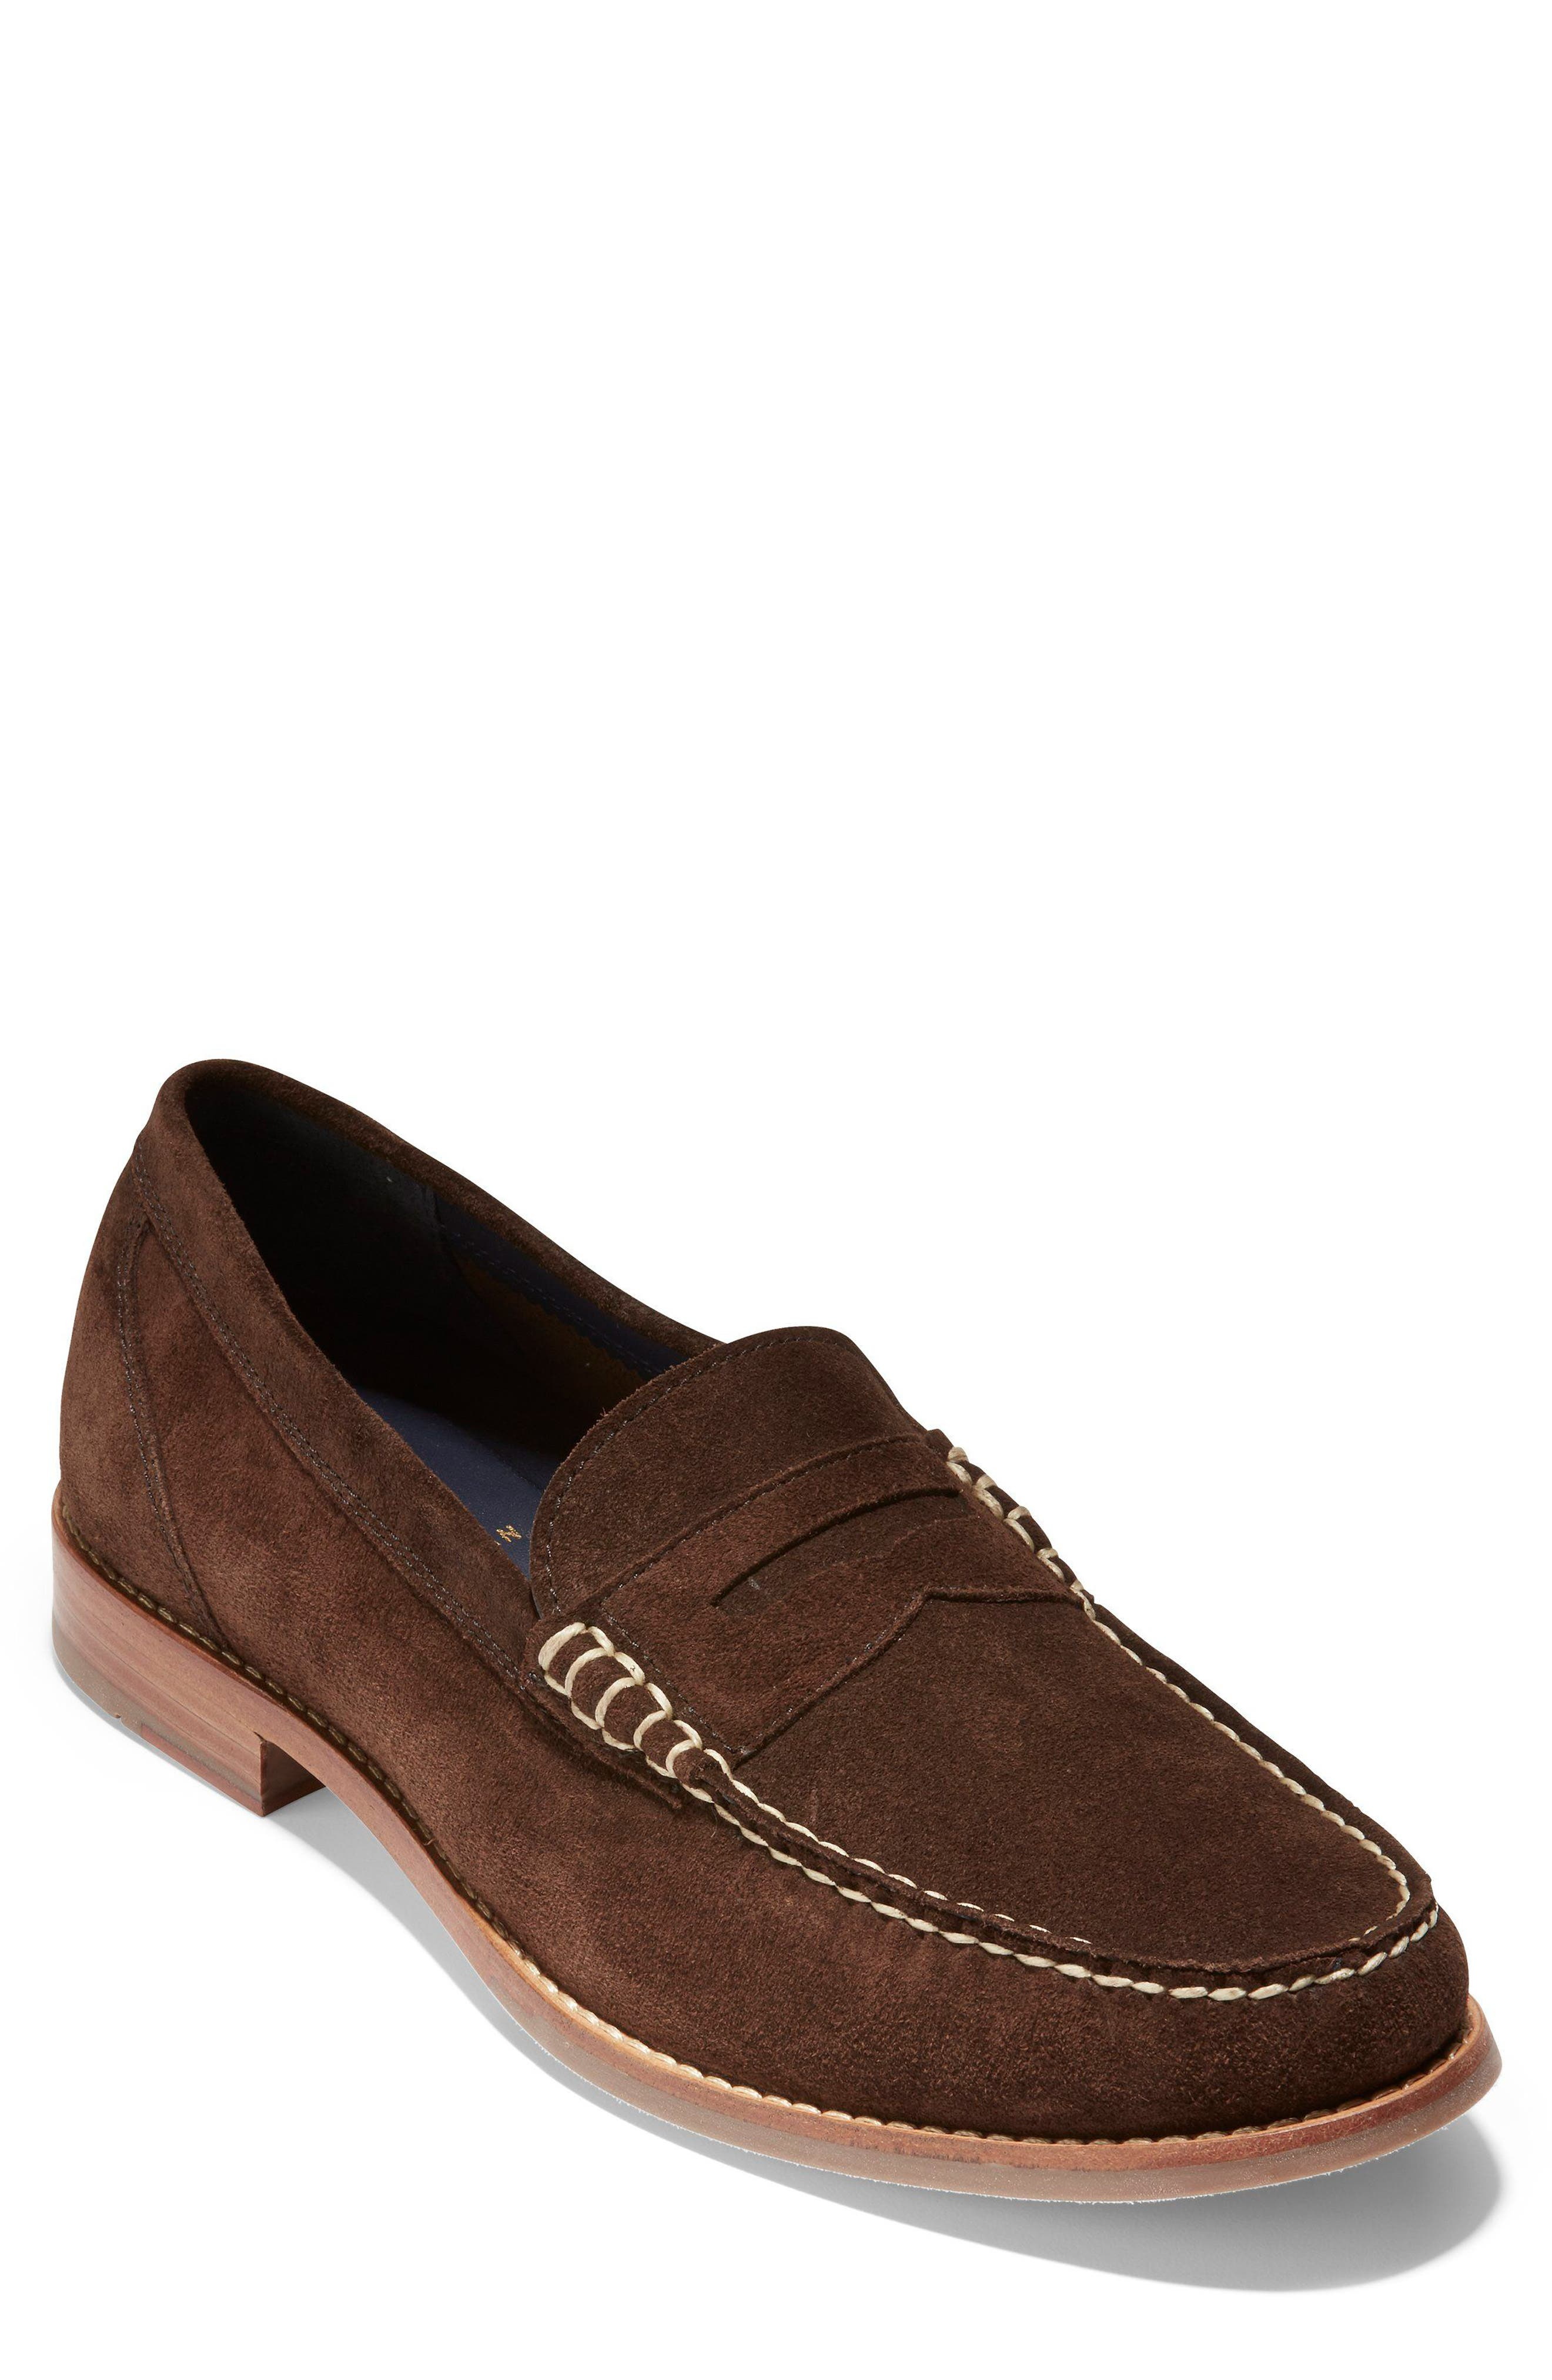 'Pinch Grand' Penny Loafer,                         Main,                         color, Brown Suede